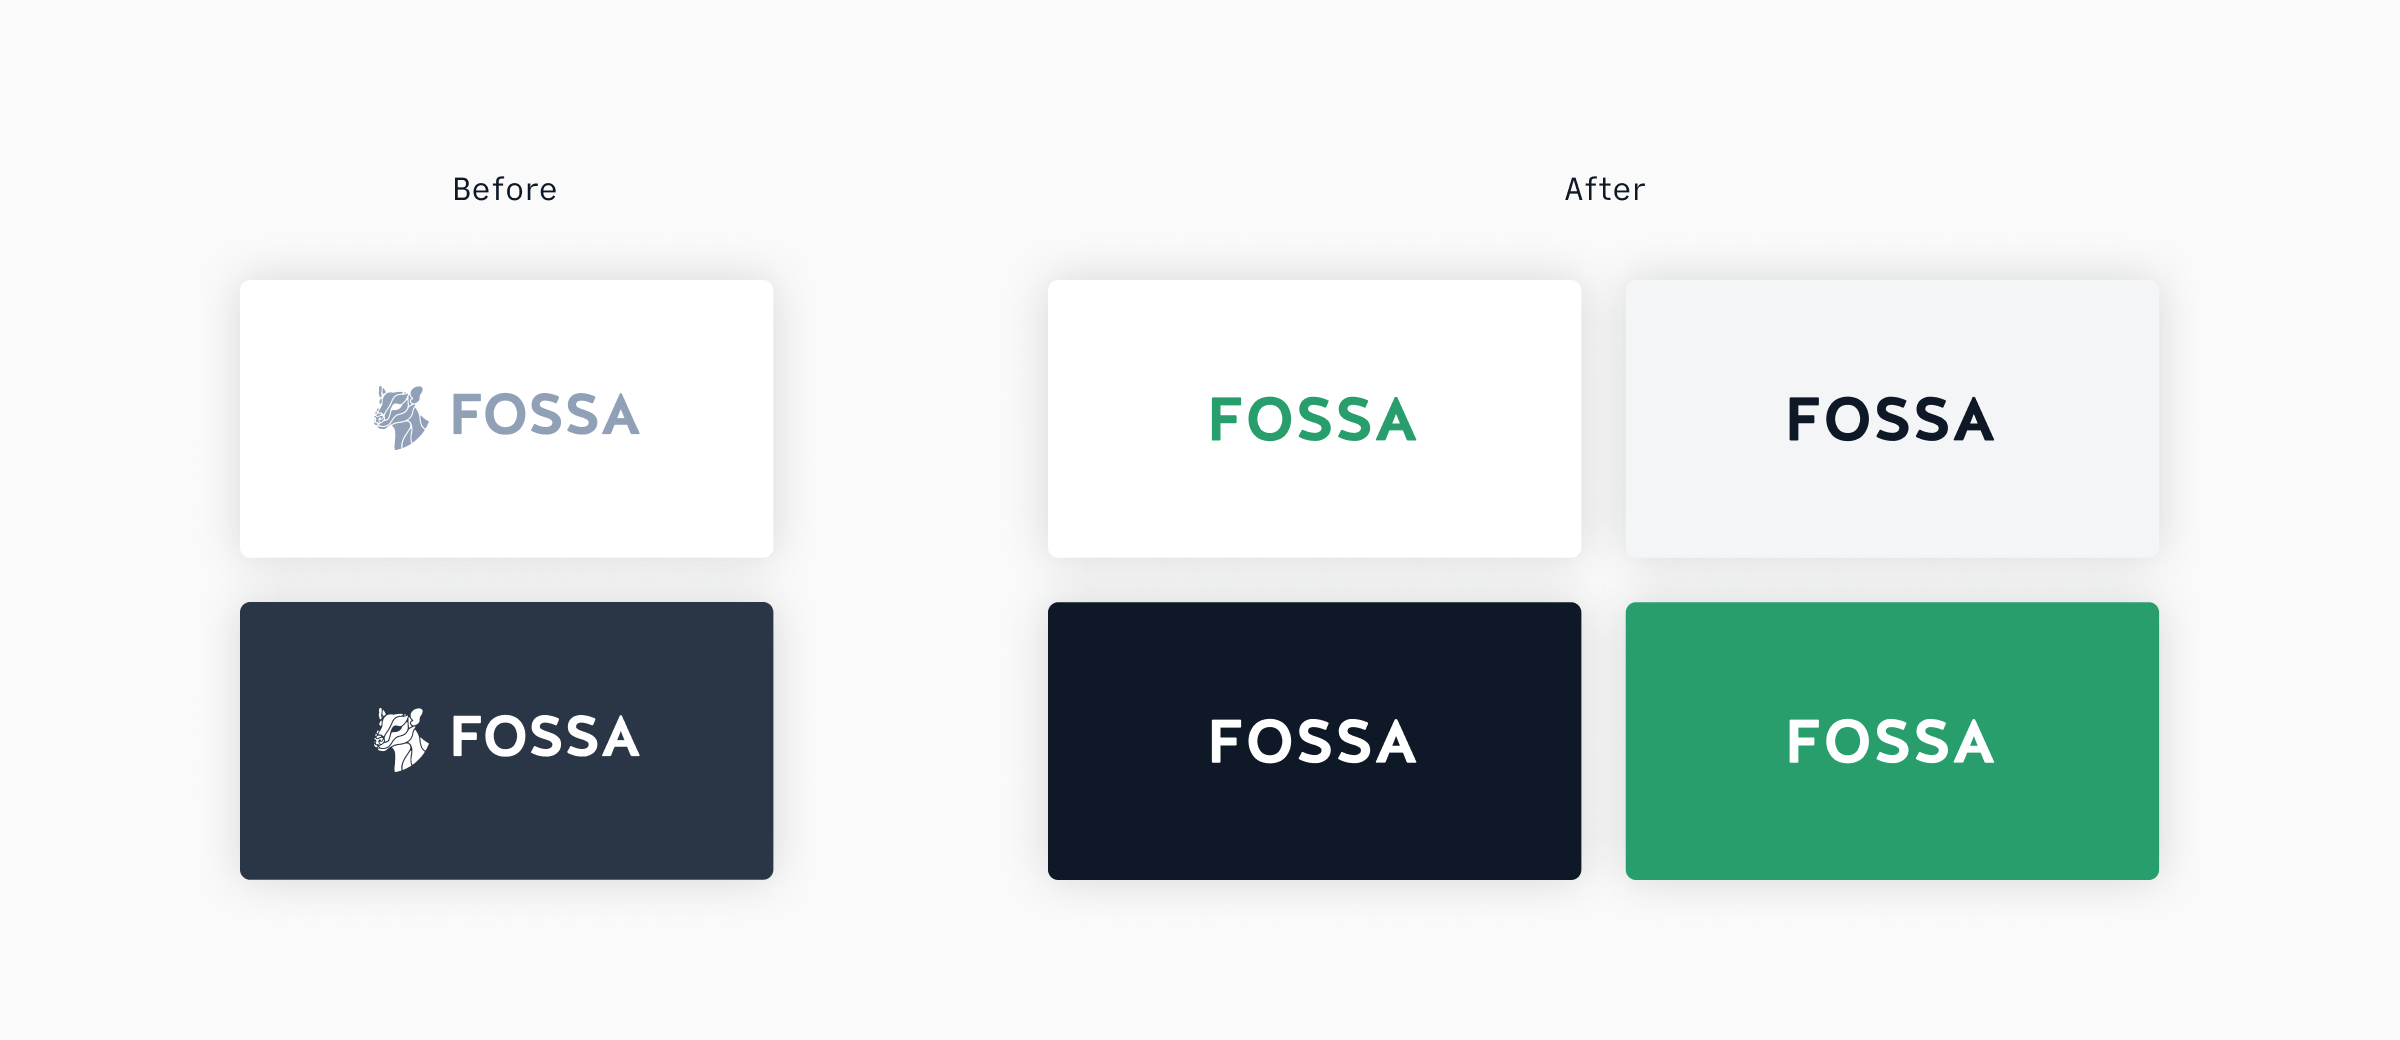 FOSSA logos: before and after